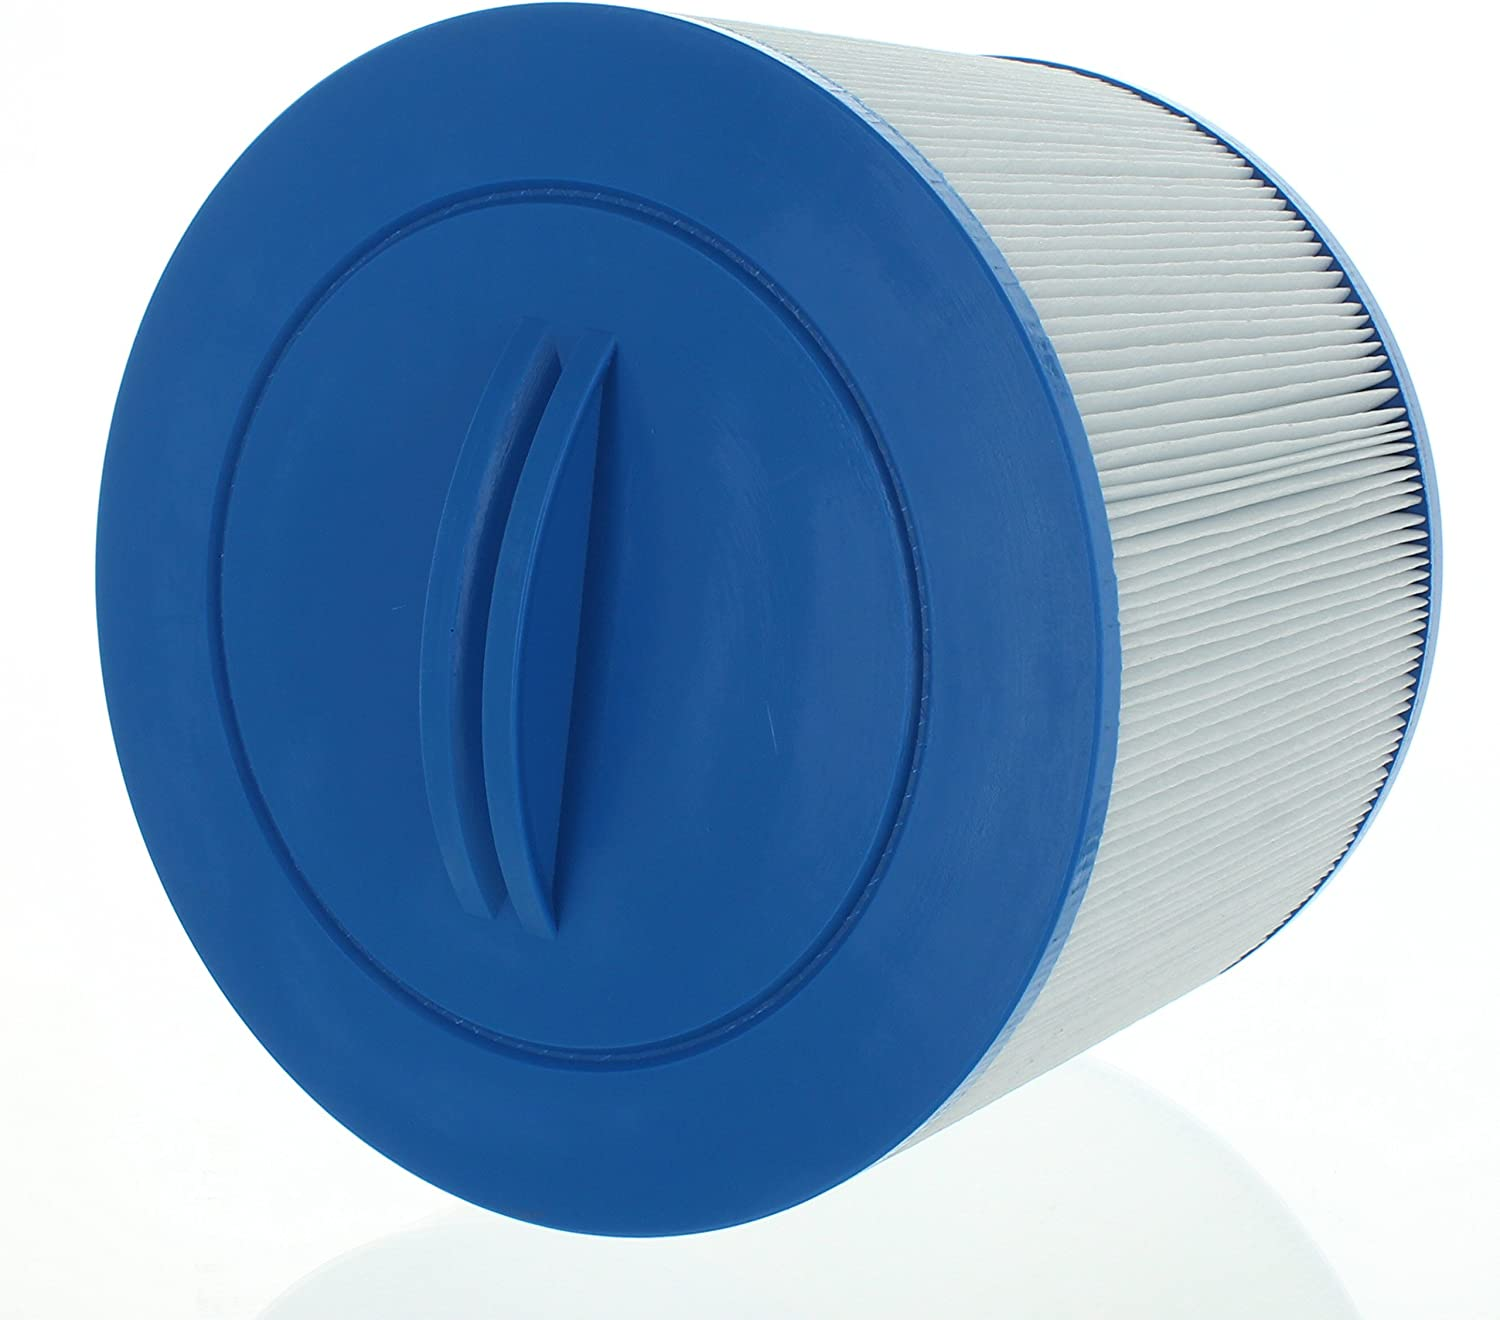 Guardian Pool Spa Filter Replaces 8CH-950 PBF50-F2S 0536 and Spa Bull Frog Spas PBF35-M